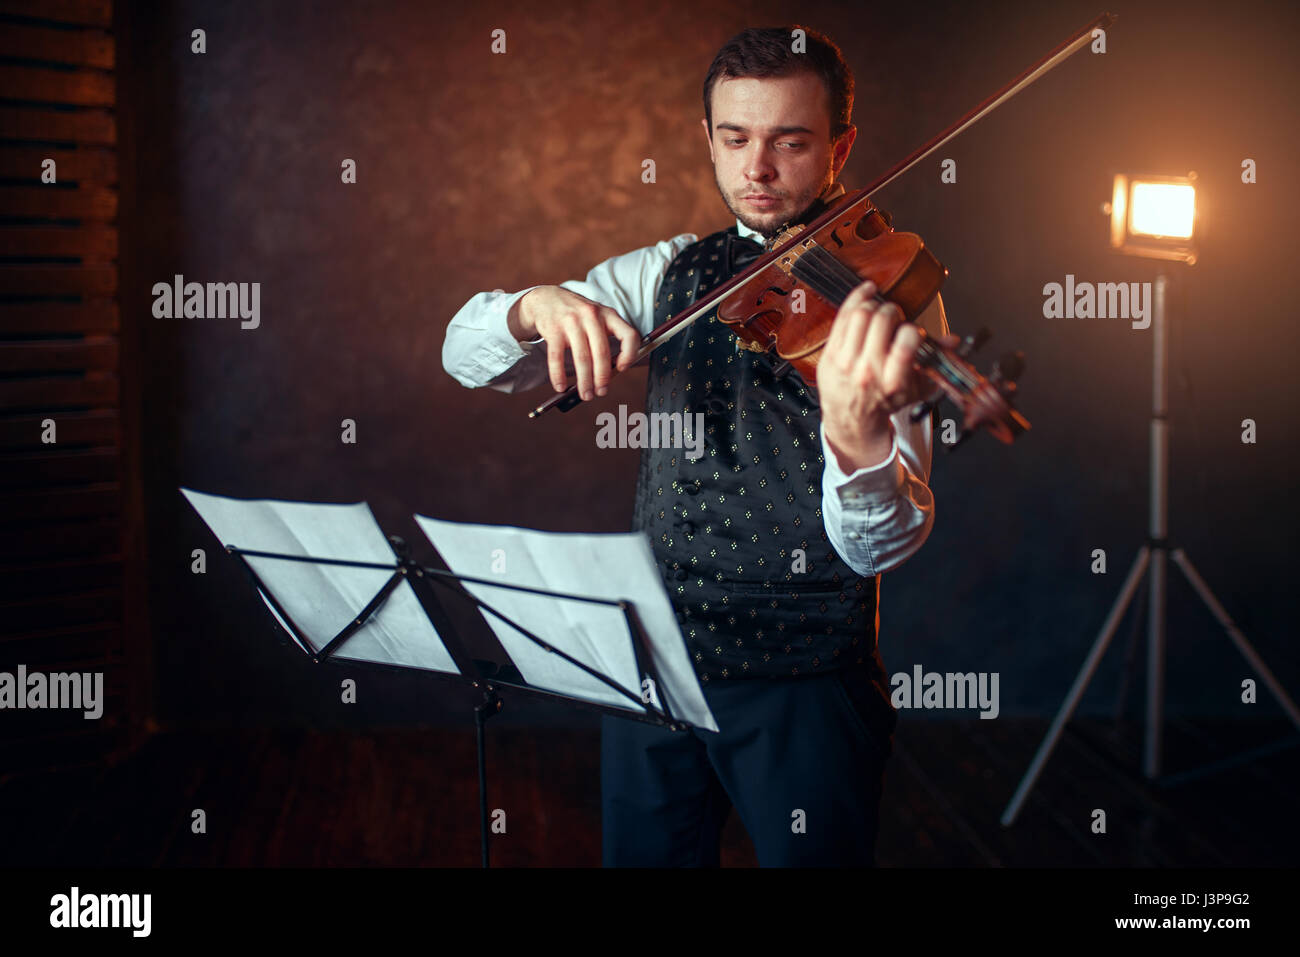 Portrait of male violinist with violin against music stand. Fiddler man with musical instrument playing in studio, - Stock Image